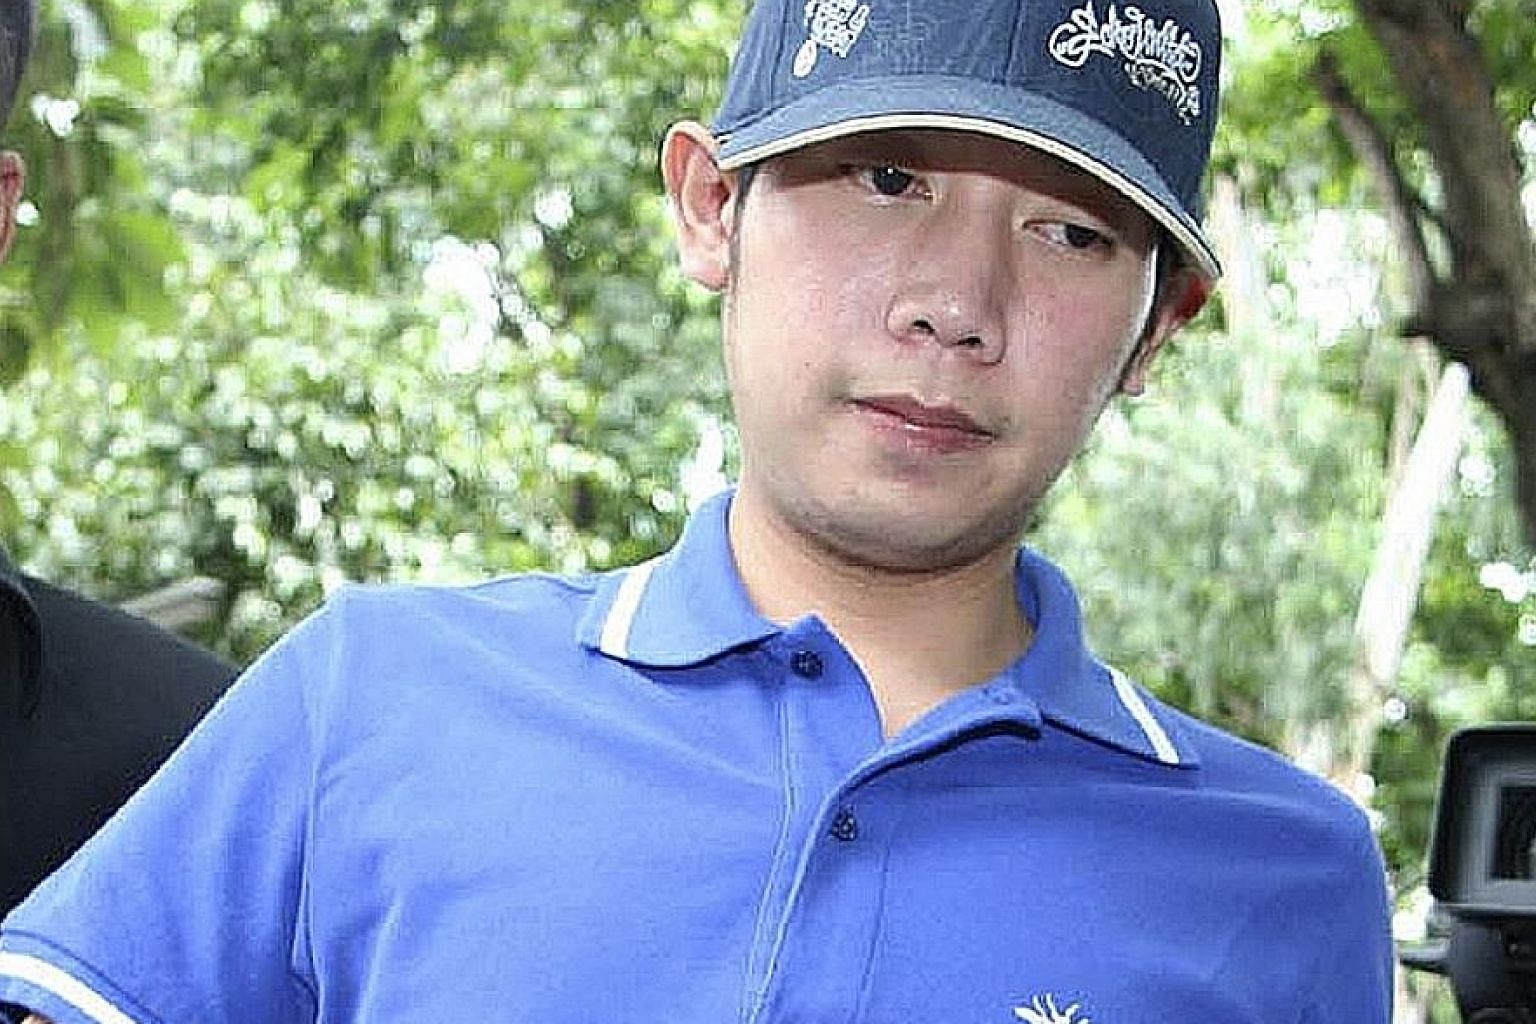 A 2012 photo of Mr Vorayuth Yoovidhya, the son of Mr Chalerm Yoovidhya, whose clan owns about half of the Red Bull energy drink empire. PHOTO: EPA-EFE